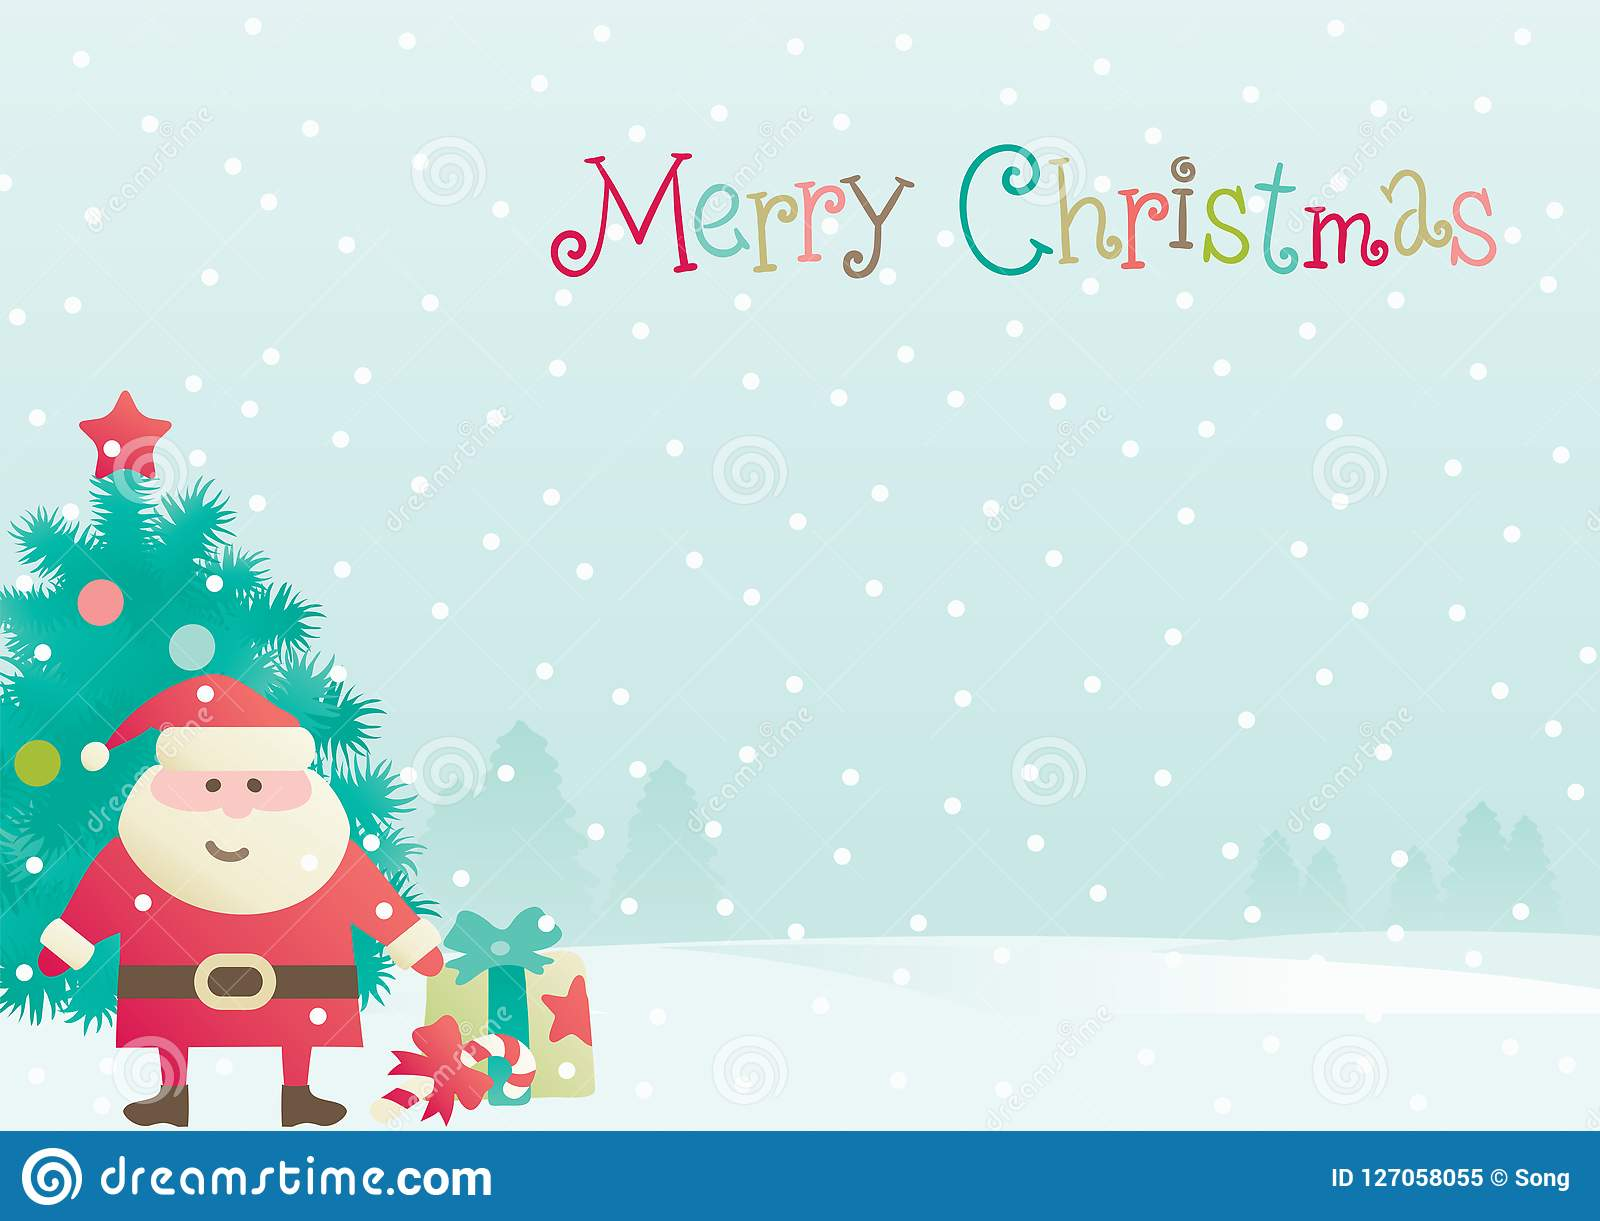 Merry christmas greeting card at flat style stock illustration download merry christmas greeting card at flat style stock illustration illustration of card vector m4hsunfo